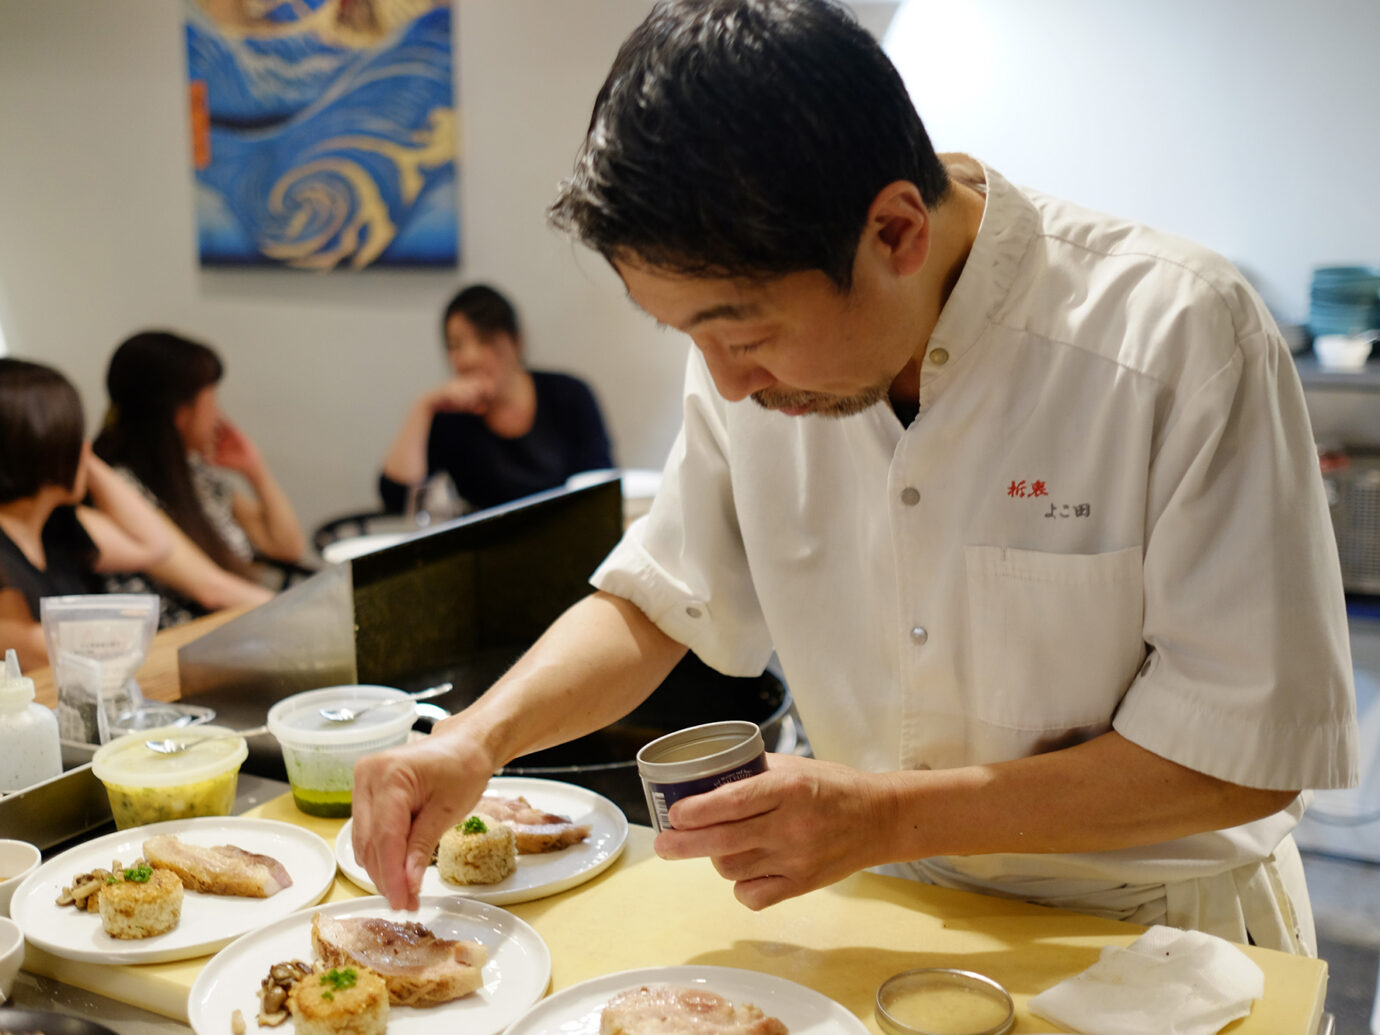 Chef plating dishes at Secchu Yokota